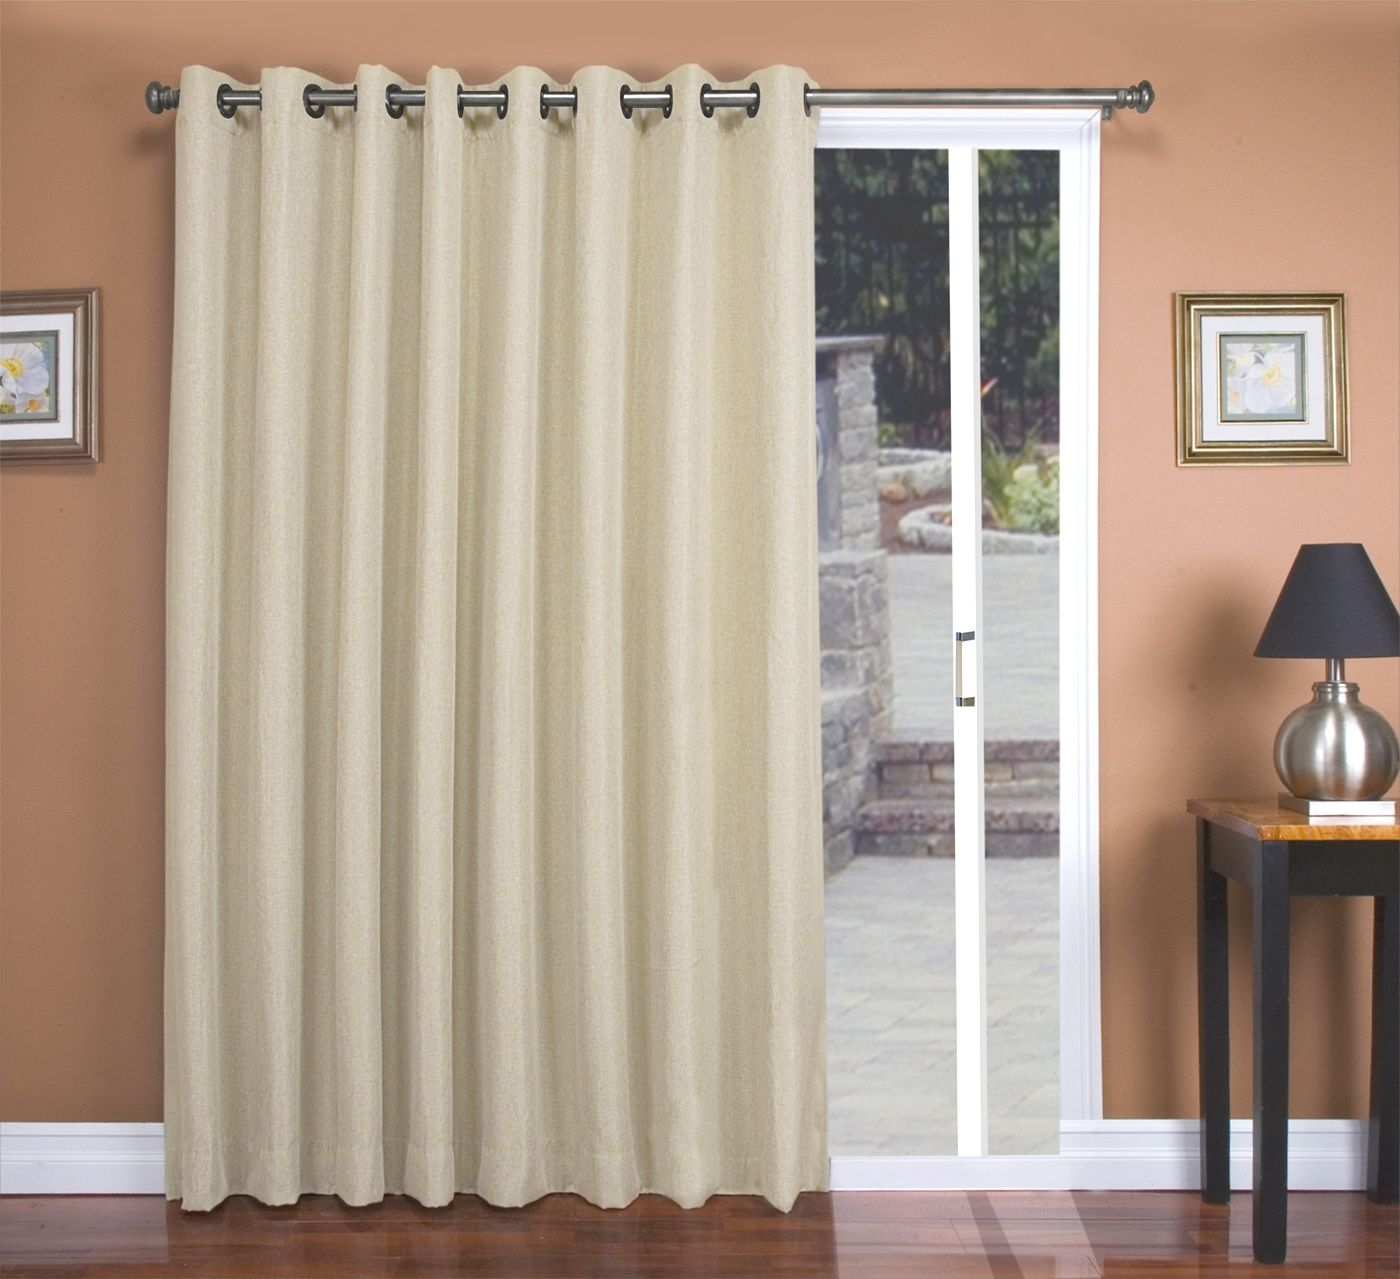 blinds glass panel images door window sliding curtain curtains